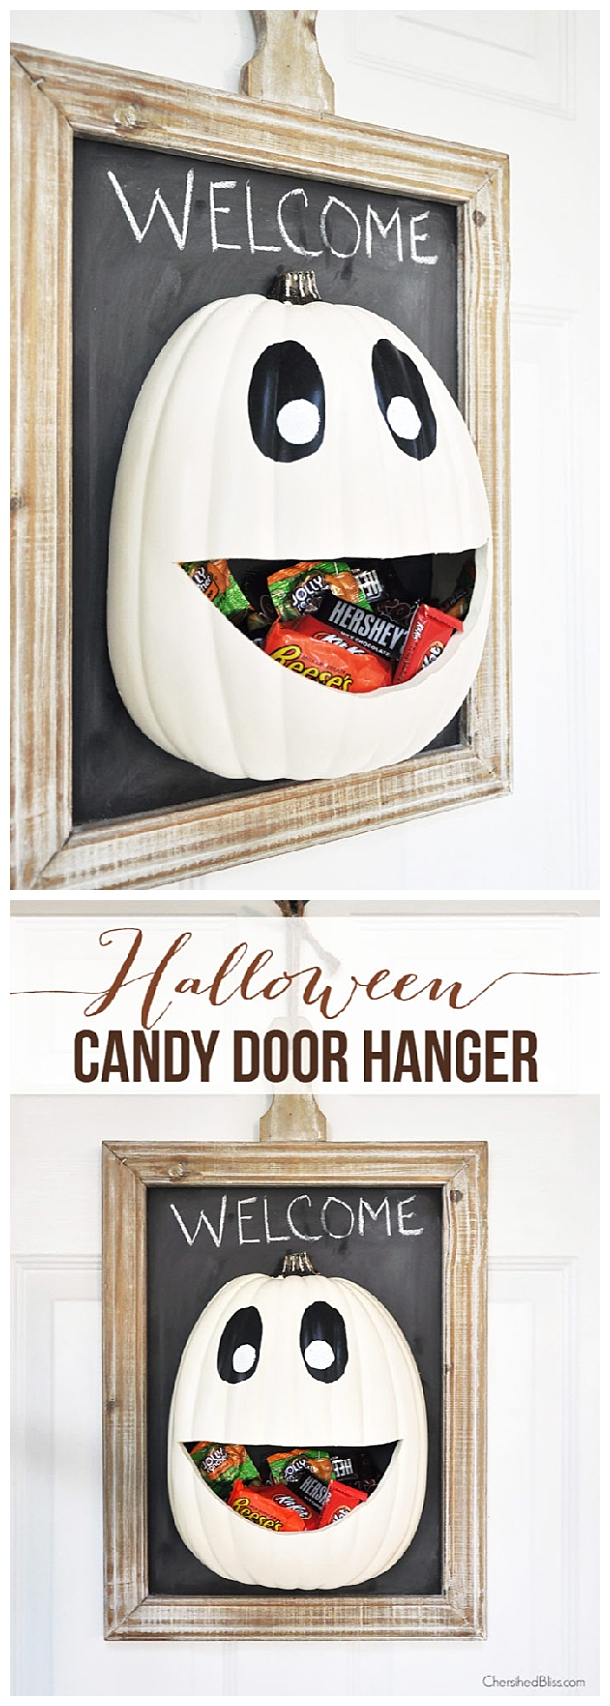 The best do it yourself halloween decorations spooktacular diy halloween candy pumpkin face door hanger decoration cherished bliss spooktacular halloween diys solutioingenieria Image collections